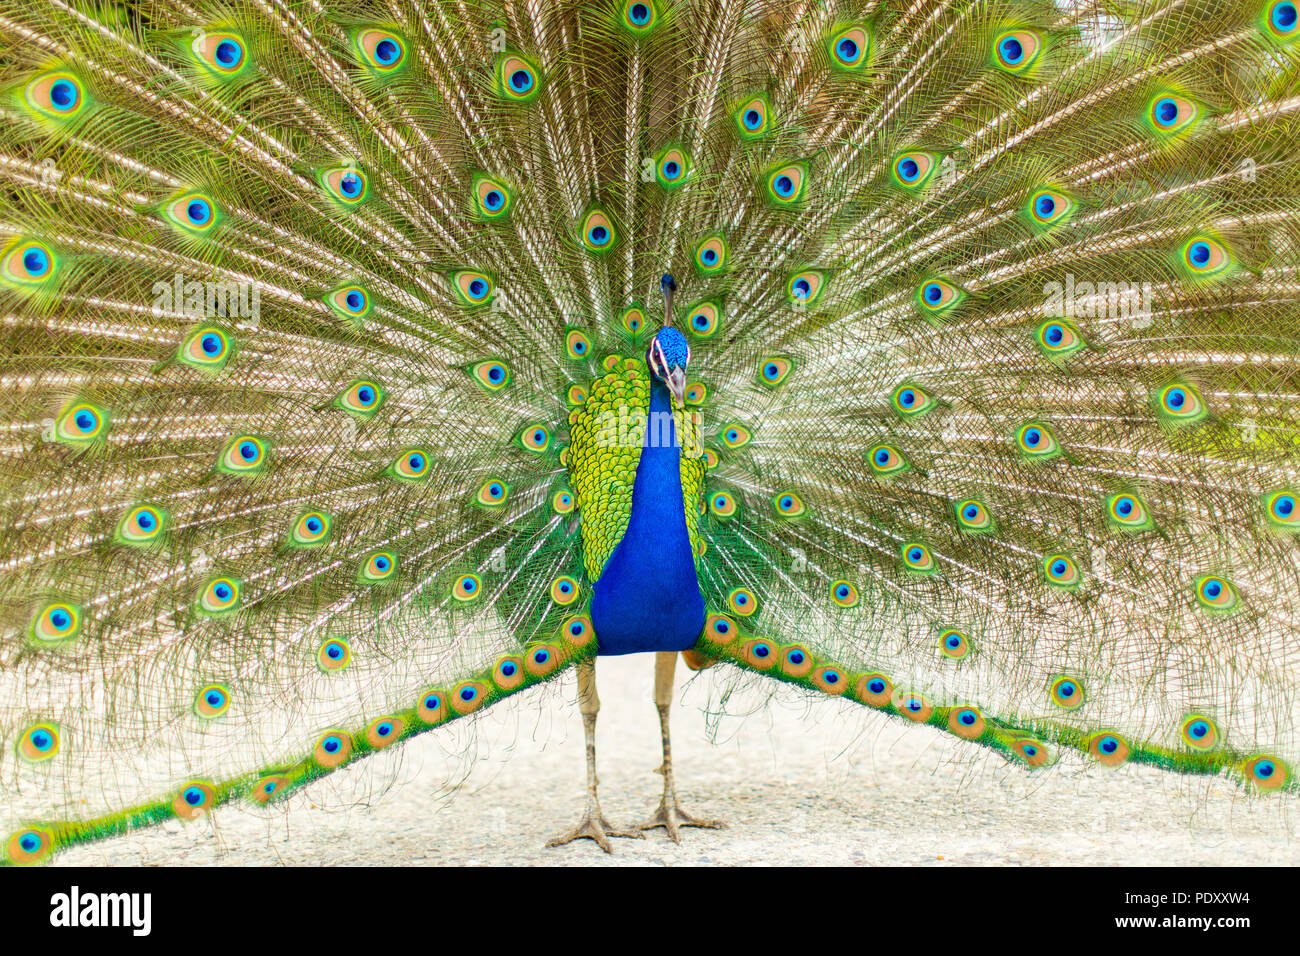 Peacock with Splayed Tail Feathers - Stock Image